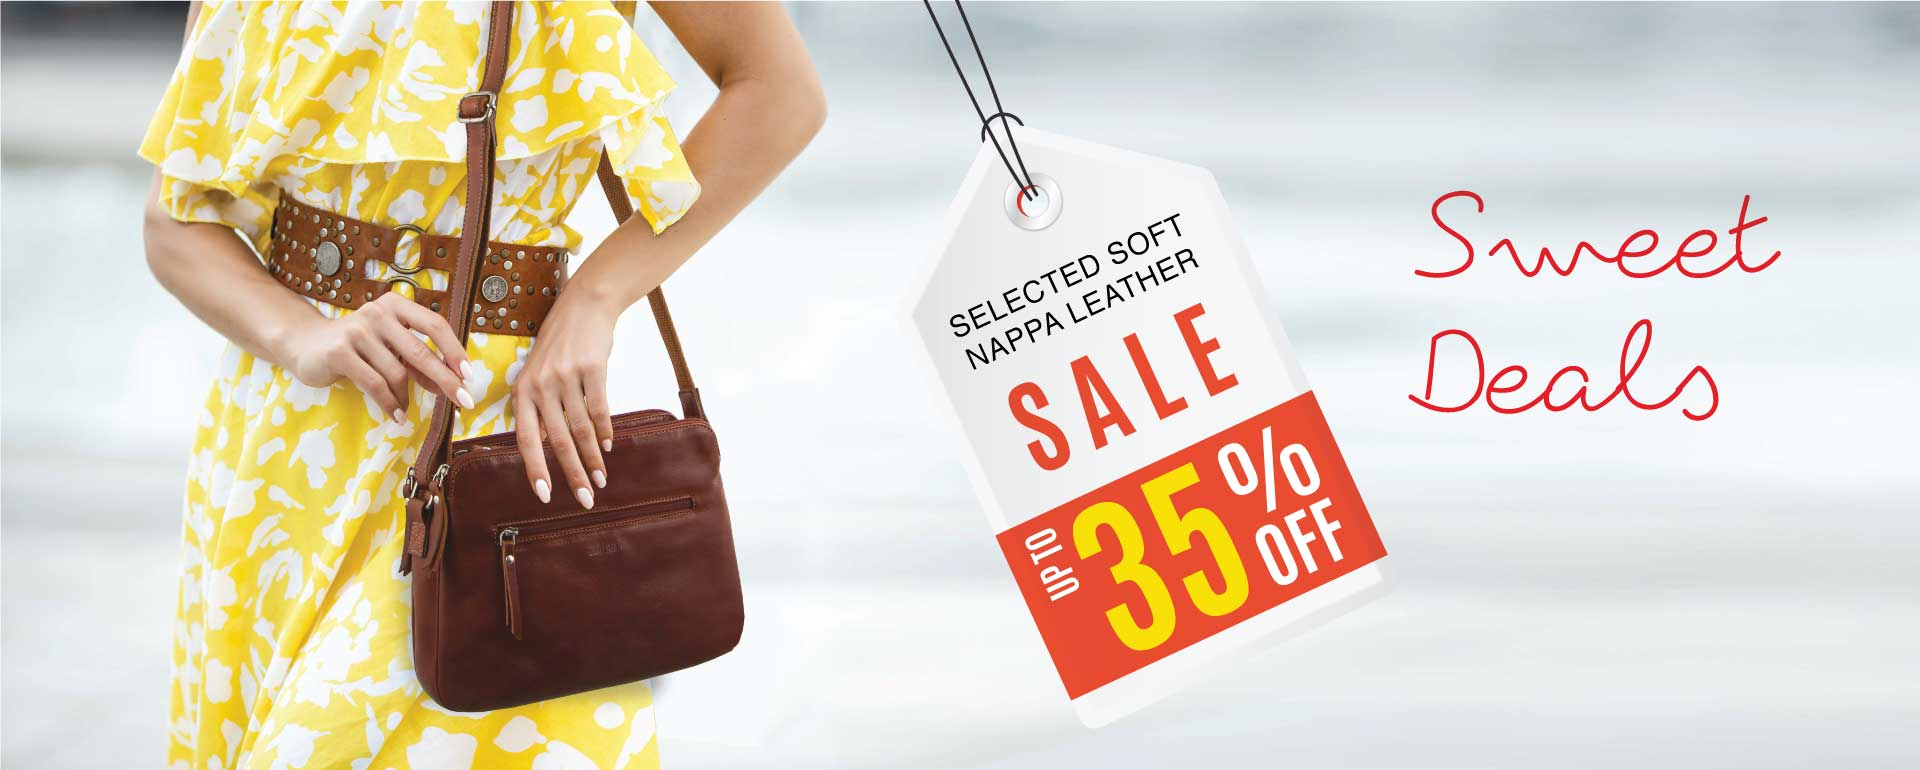 soft-nappa-leather-sweet-deals-banner.jpg